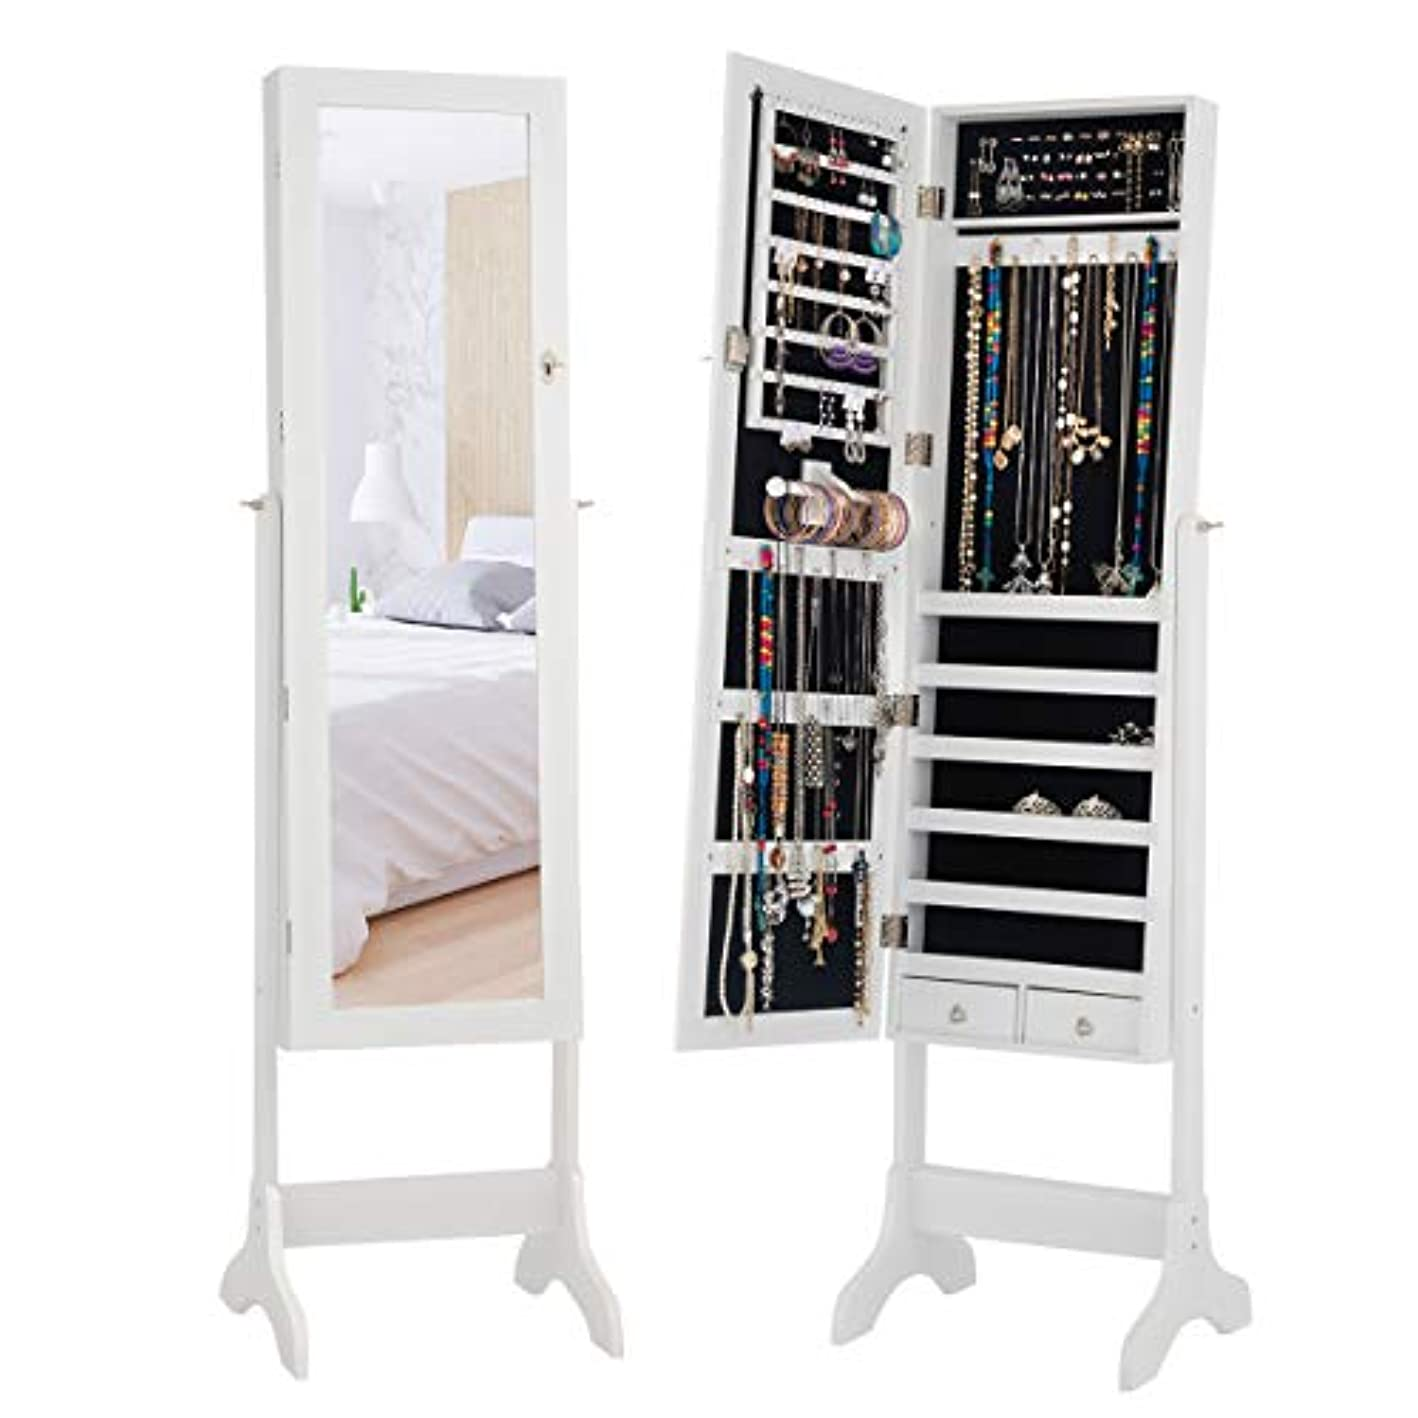 Giantex Mirror Jewelry Armoire Cabinet Lockable Home Storage Organizer Women Girls Free Standing Big Makeup Box Mirrored Home Storage Organizer Bedroom Armoires Without LED (White)